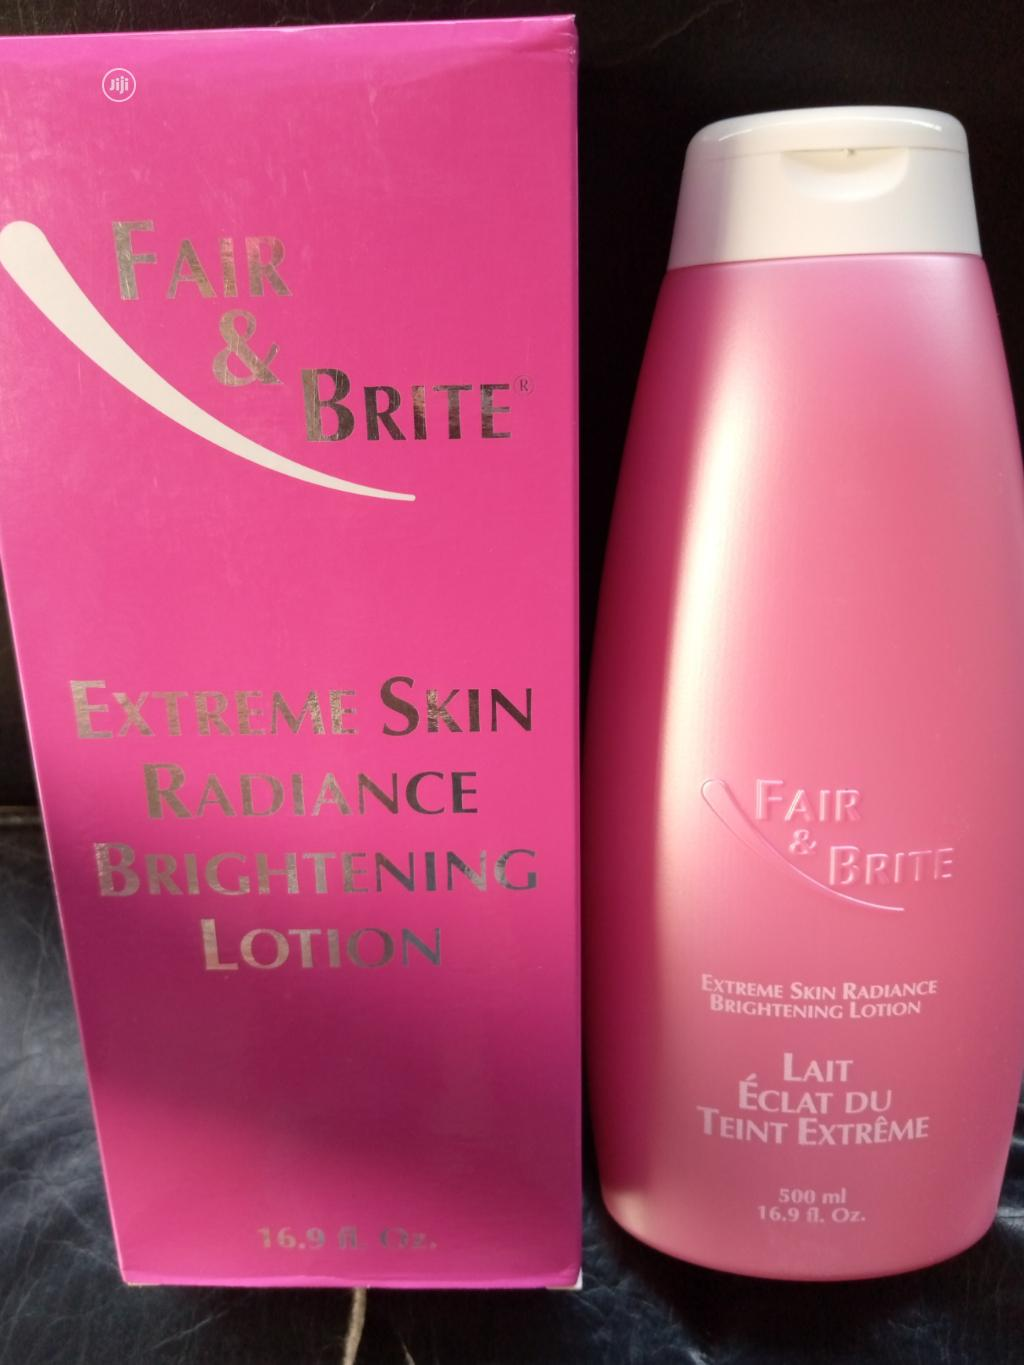 Archive: Fair Bright Extreme Skin Radiance Brightening Lotion Made in Paris